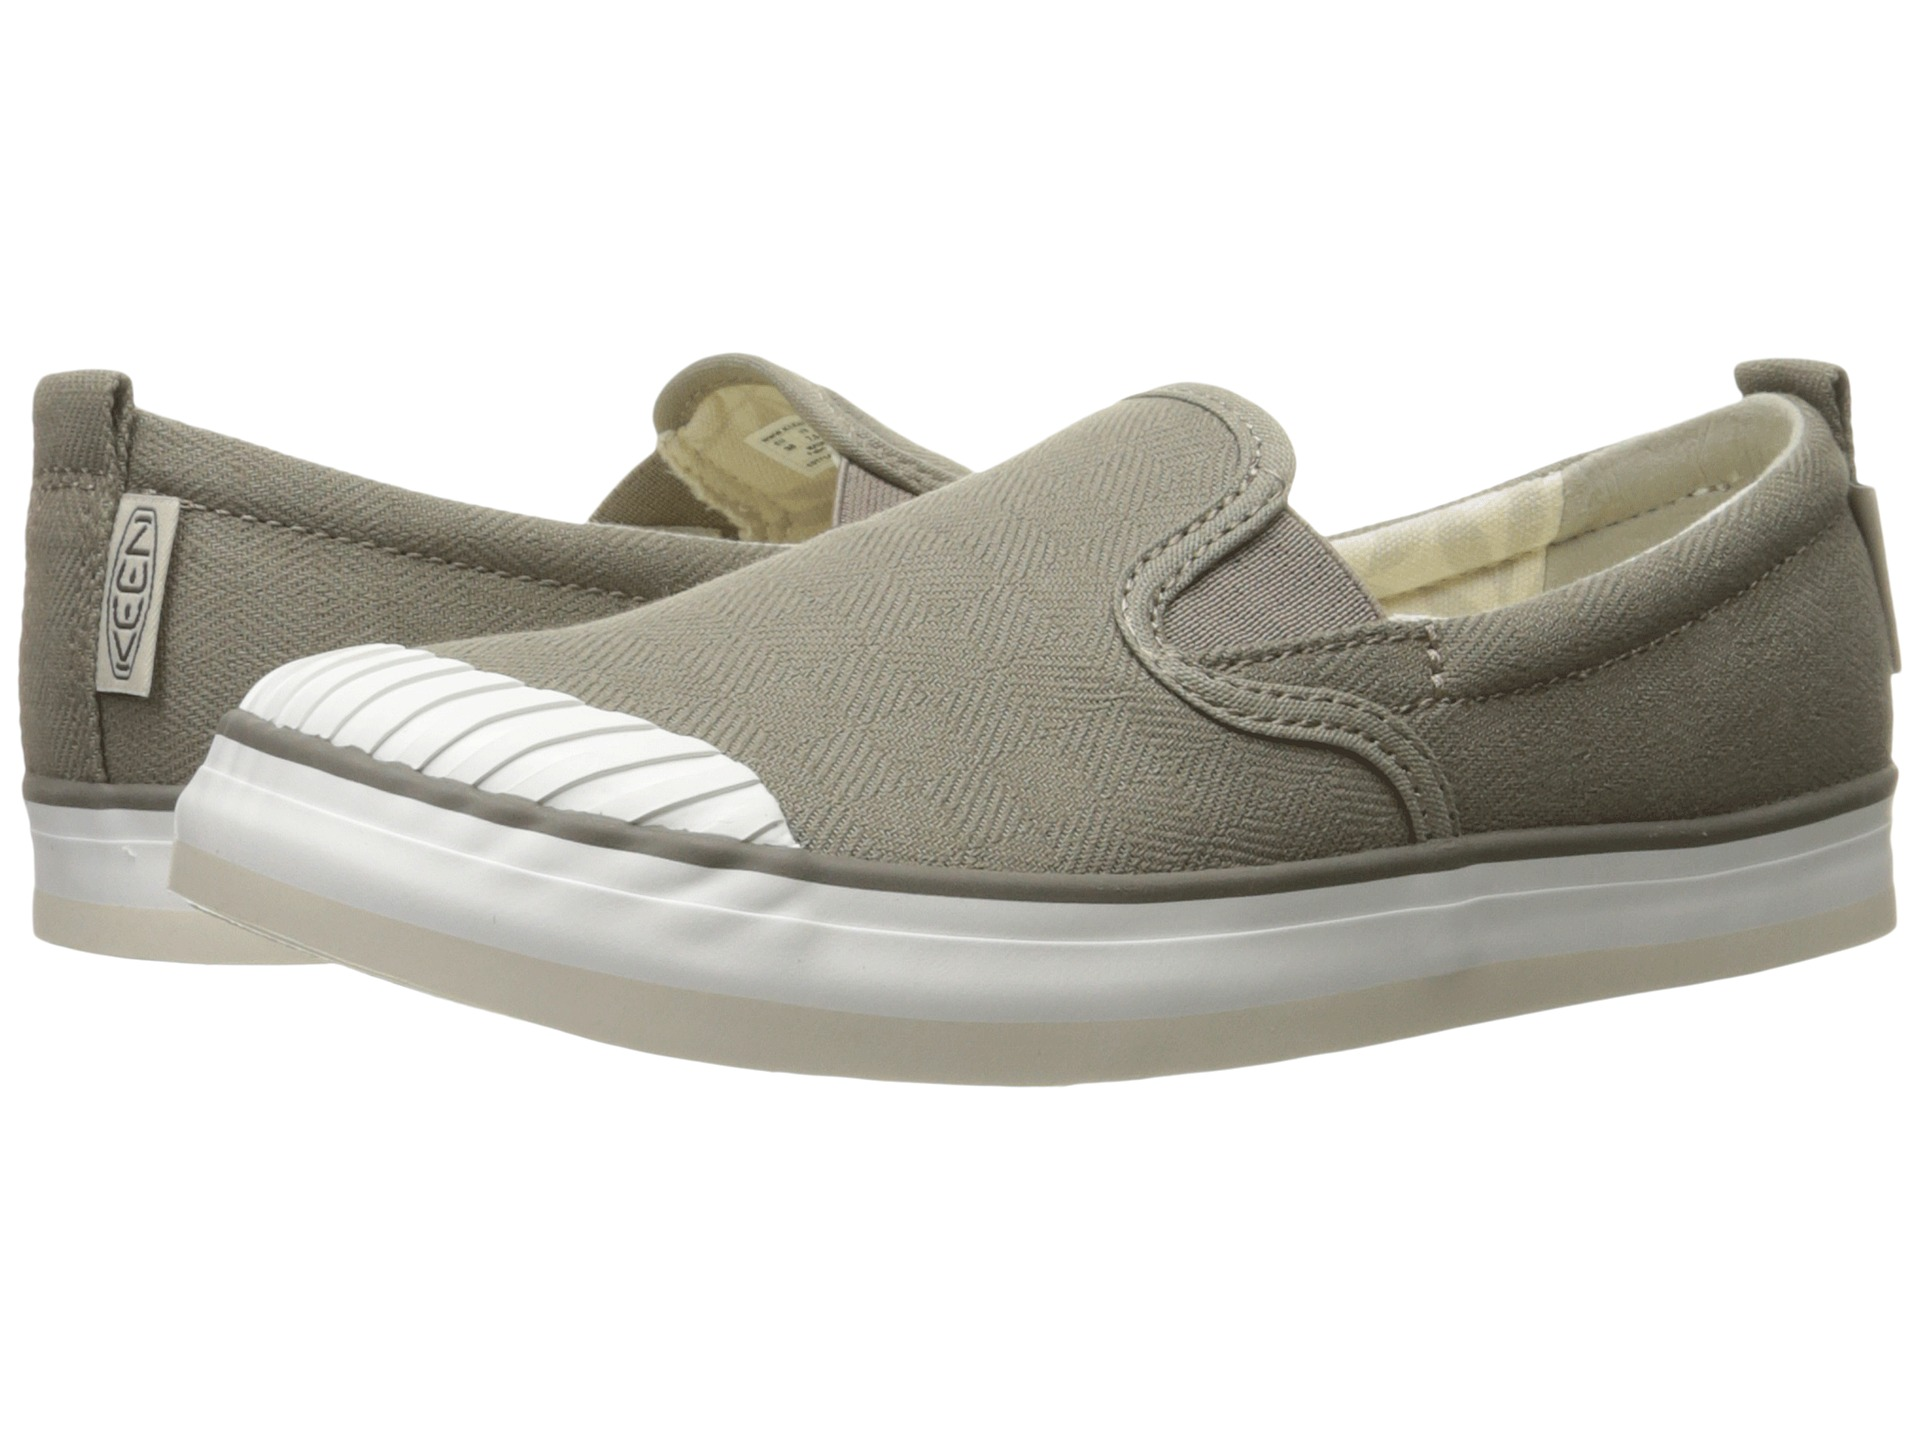 Keen Shoes Slip On